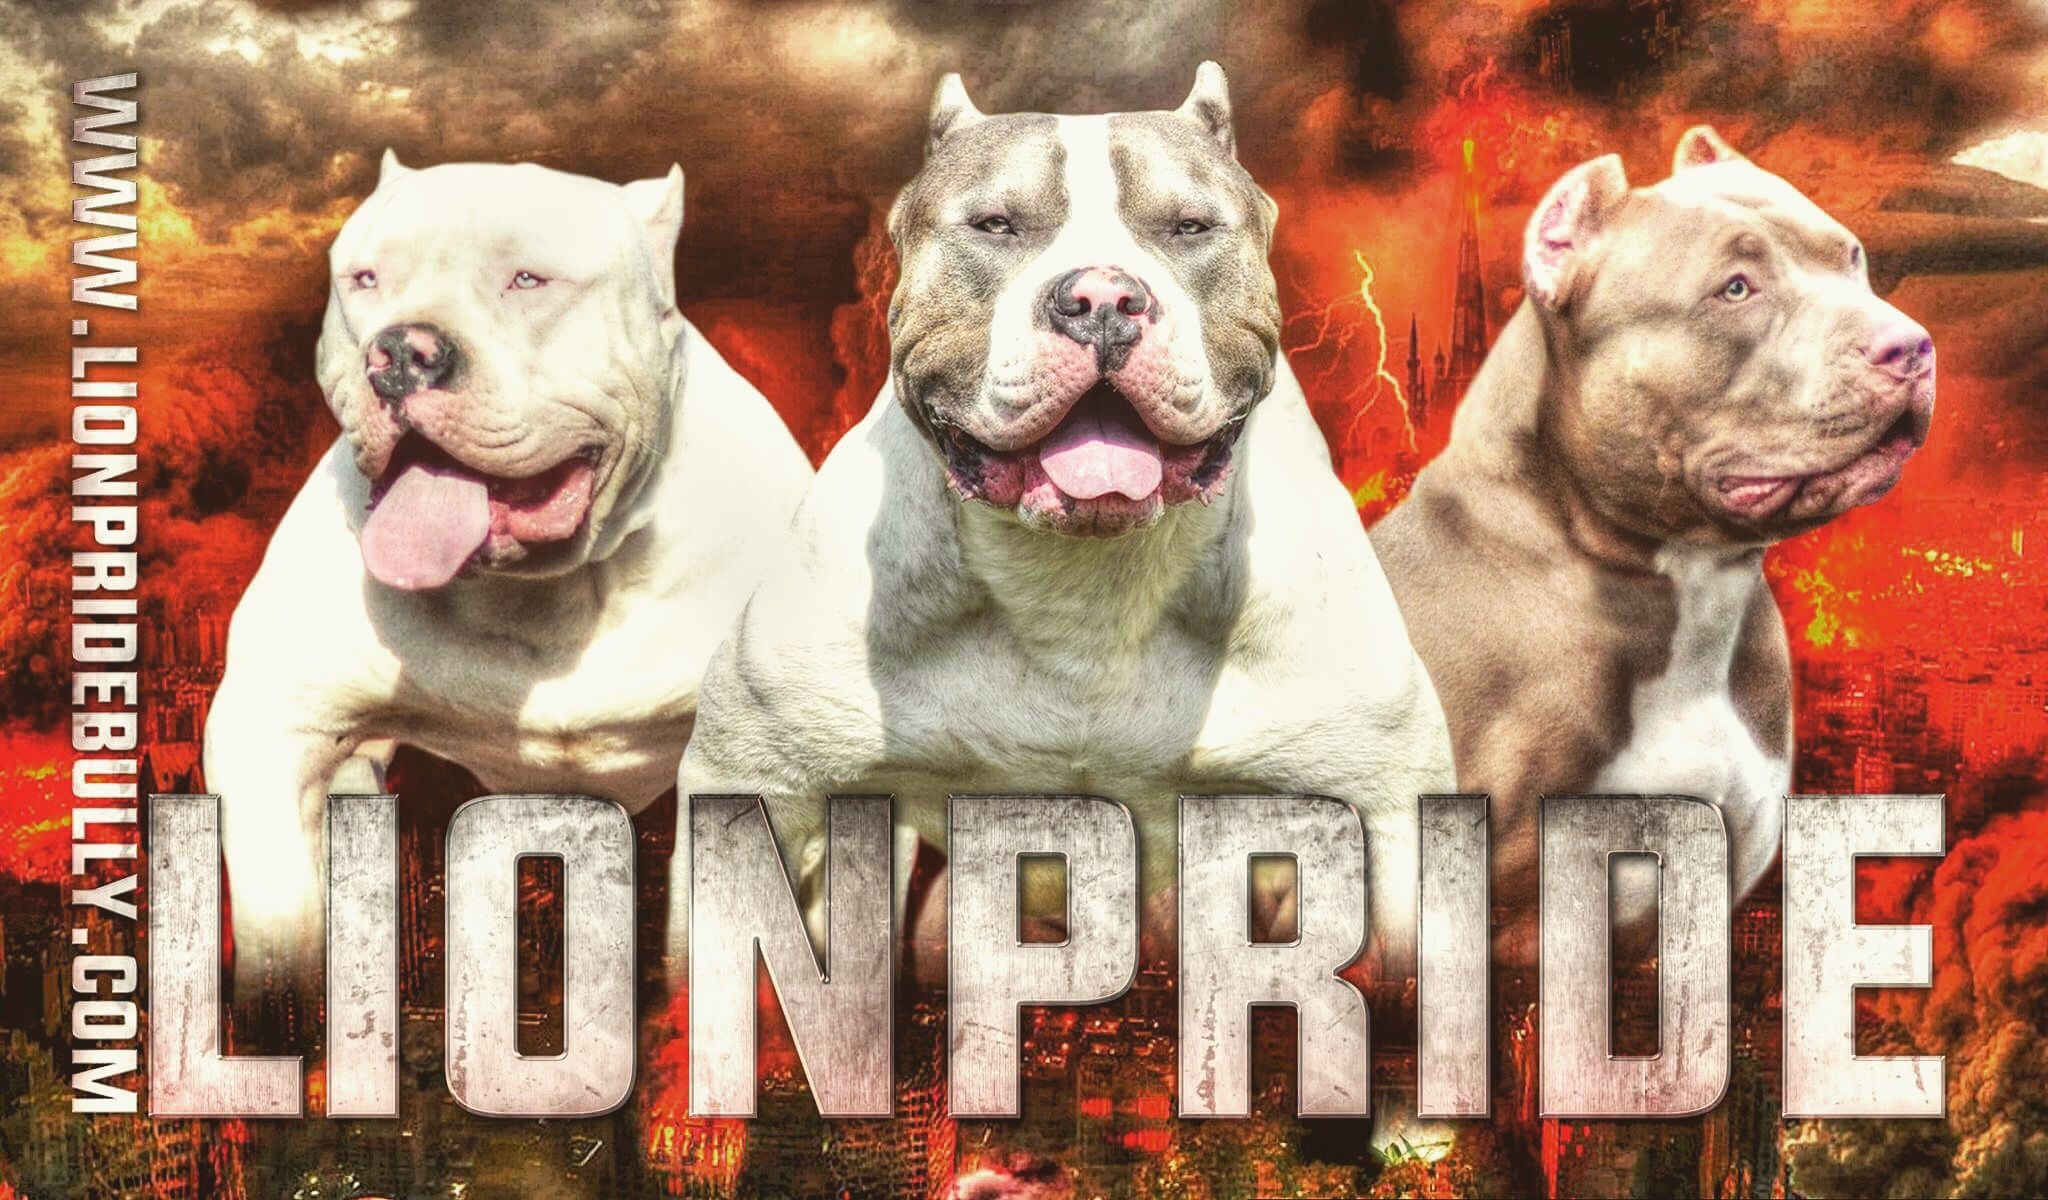 Chiot puppy puppies american bully giant xl xxl bully